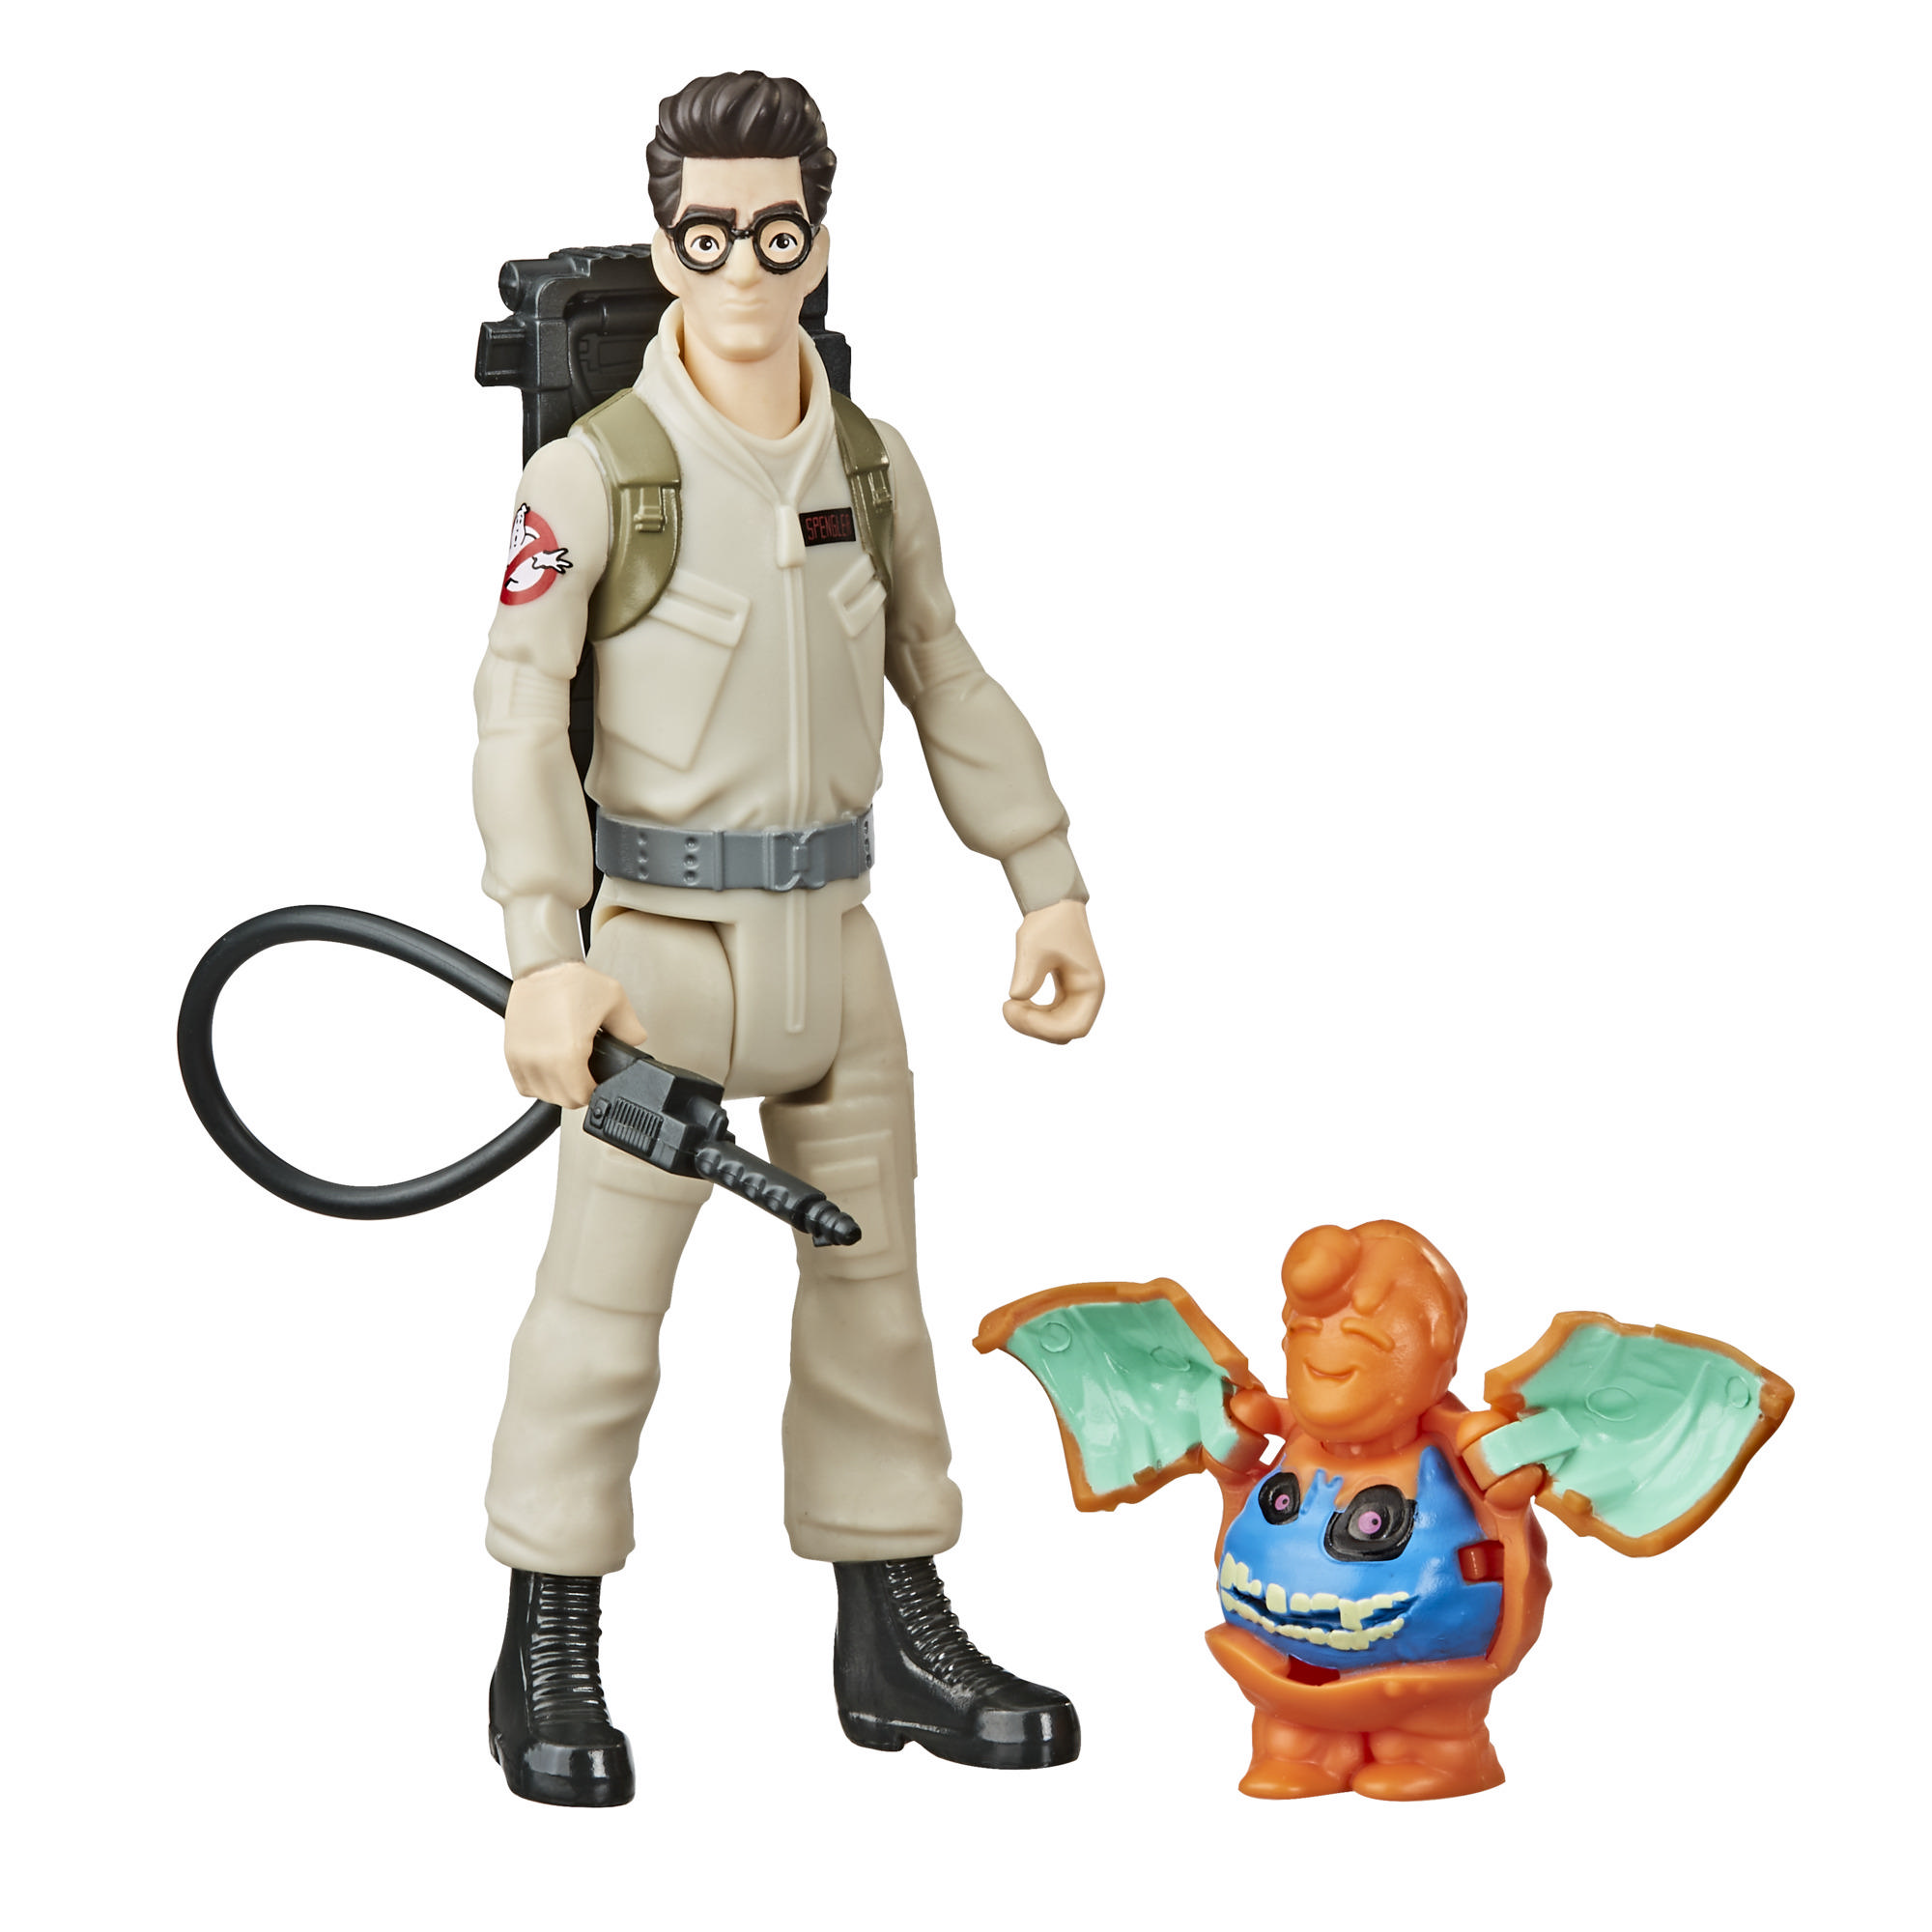 Ghostbusters Fright Features Egon Spengler Figure with Interactive Ghost Figure and Accessory for Kids Ages 4 and Up